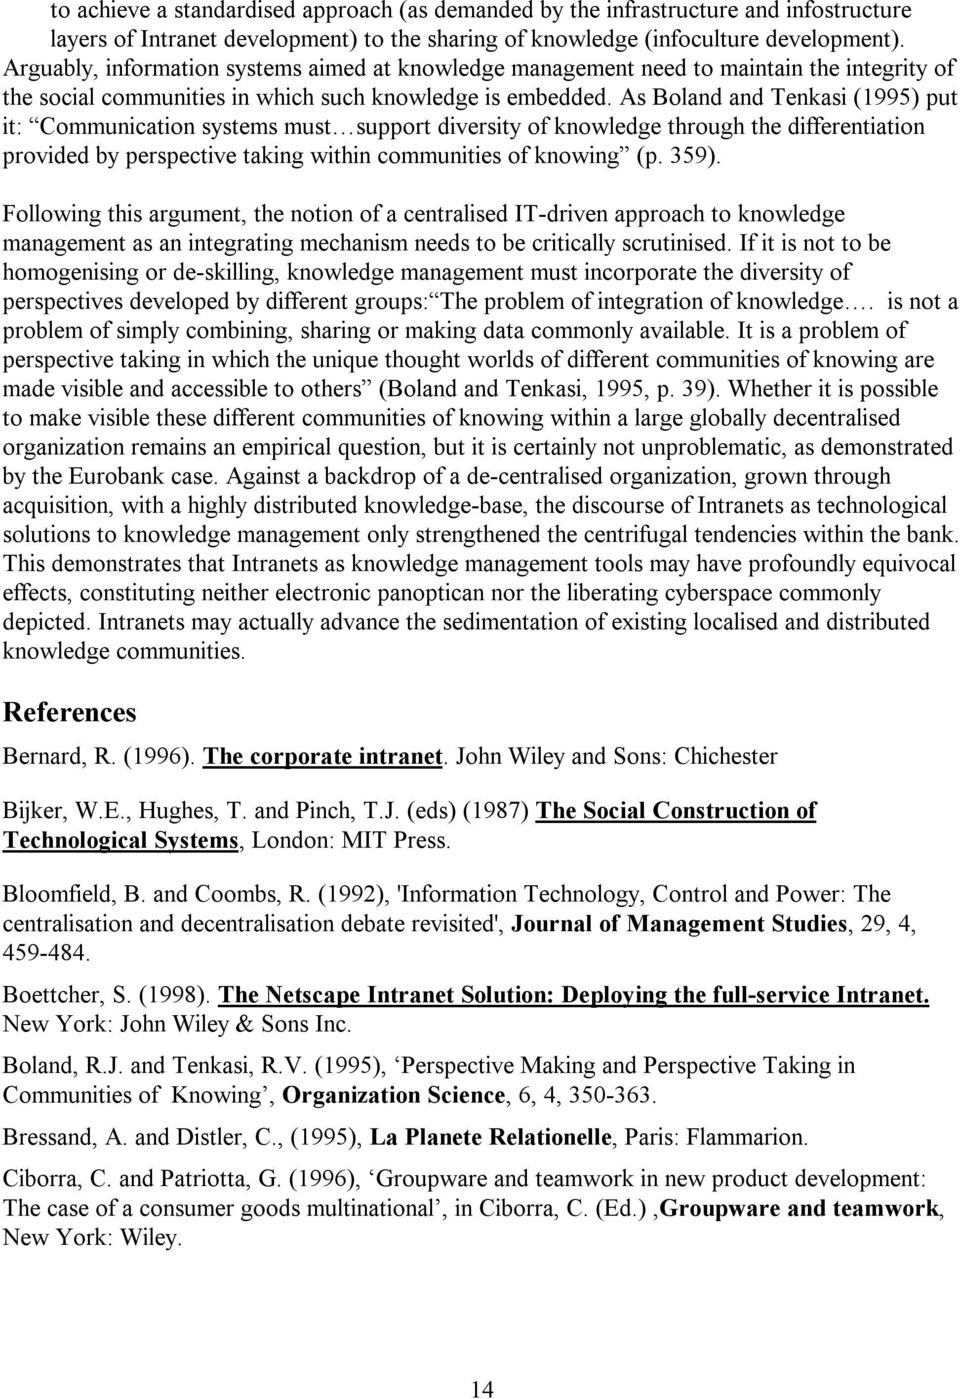 As Boland and Tenkasi (1995) put it: Communication systems must support diversity of knowledge through the differentiation provided by perspective taking within communities of knowing (p. 359).